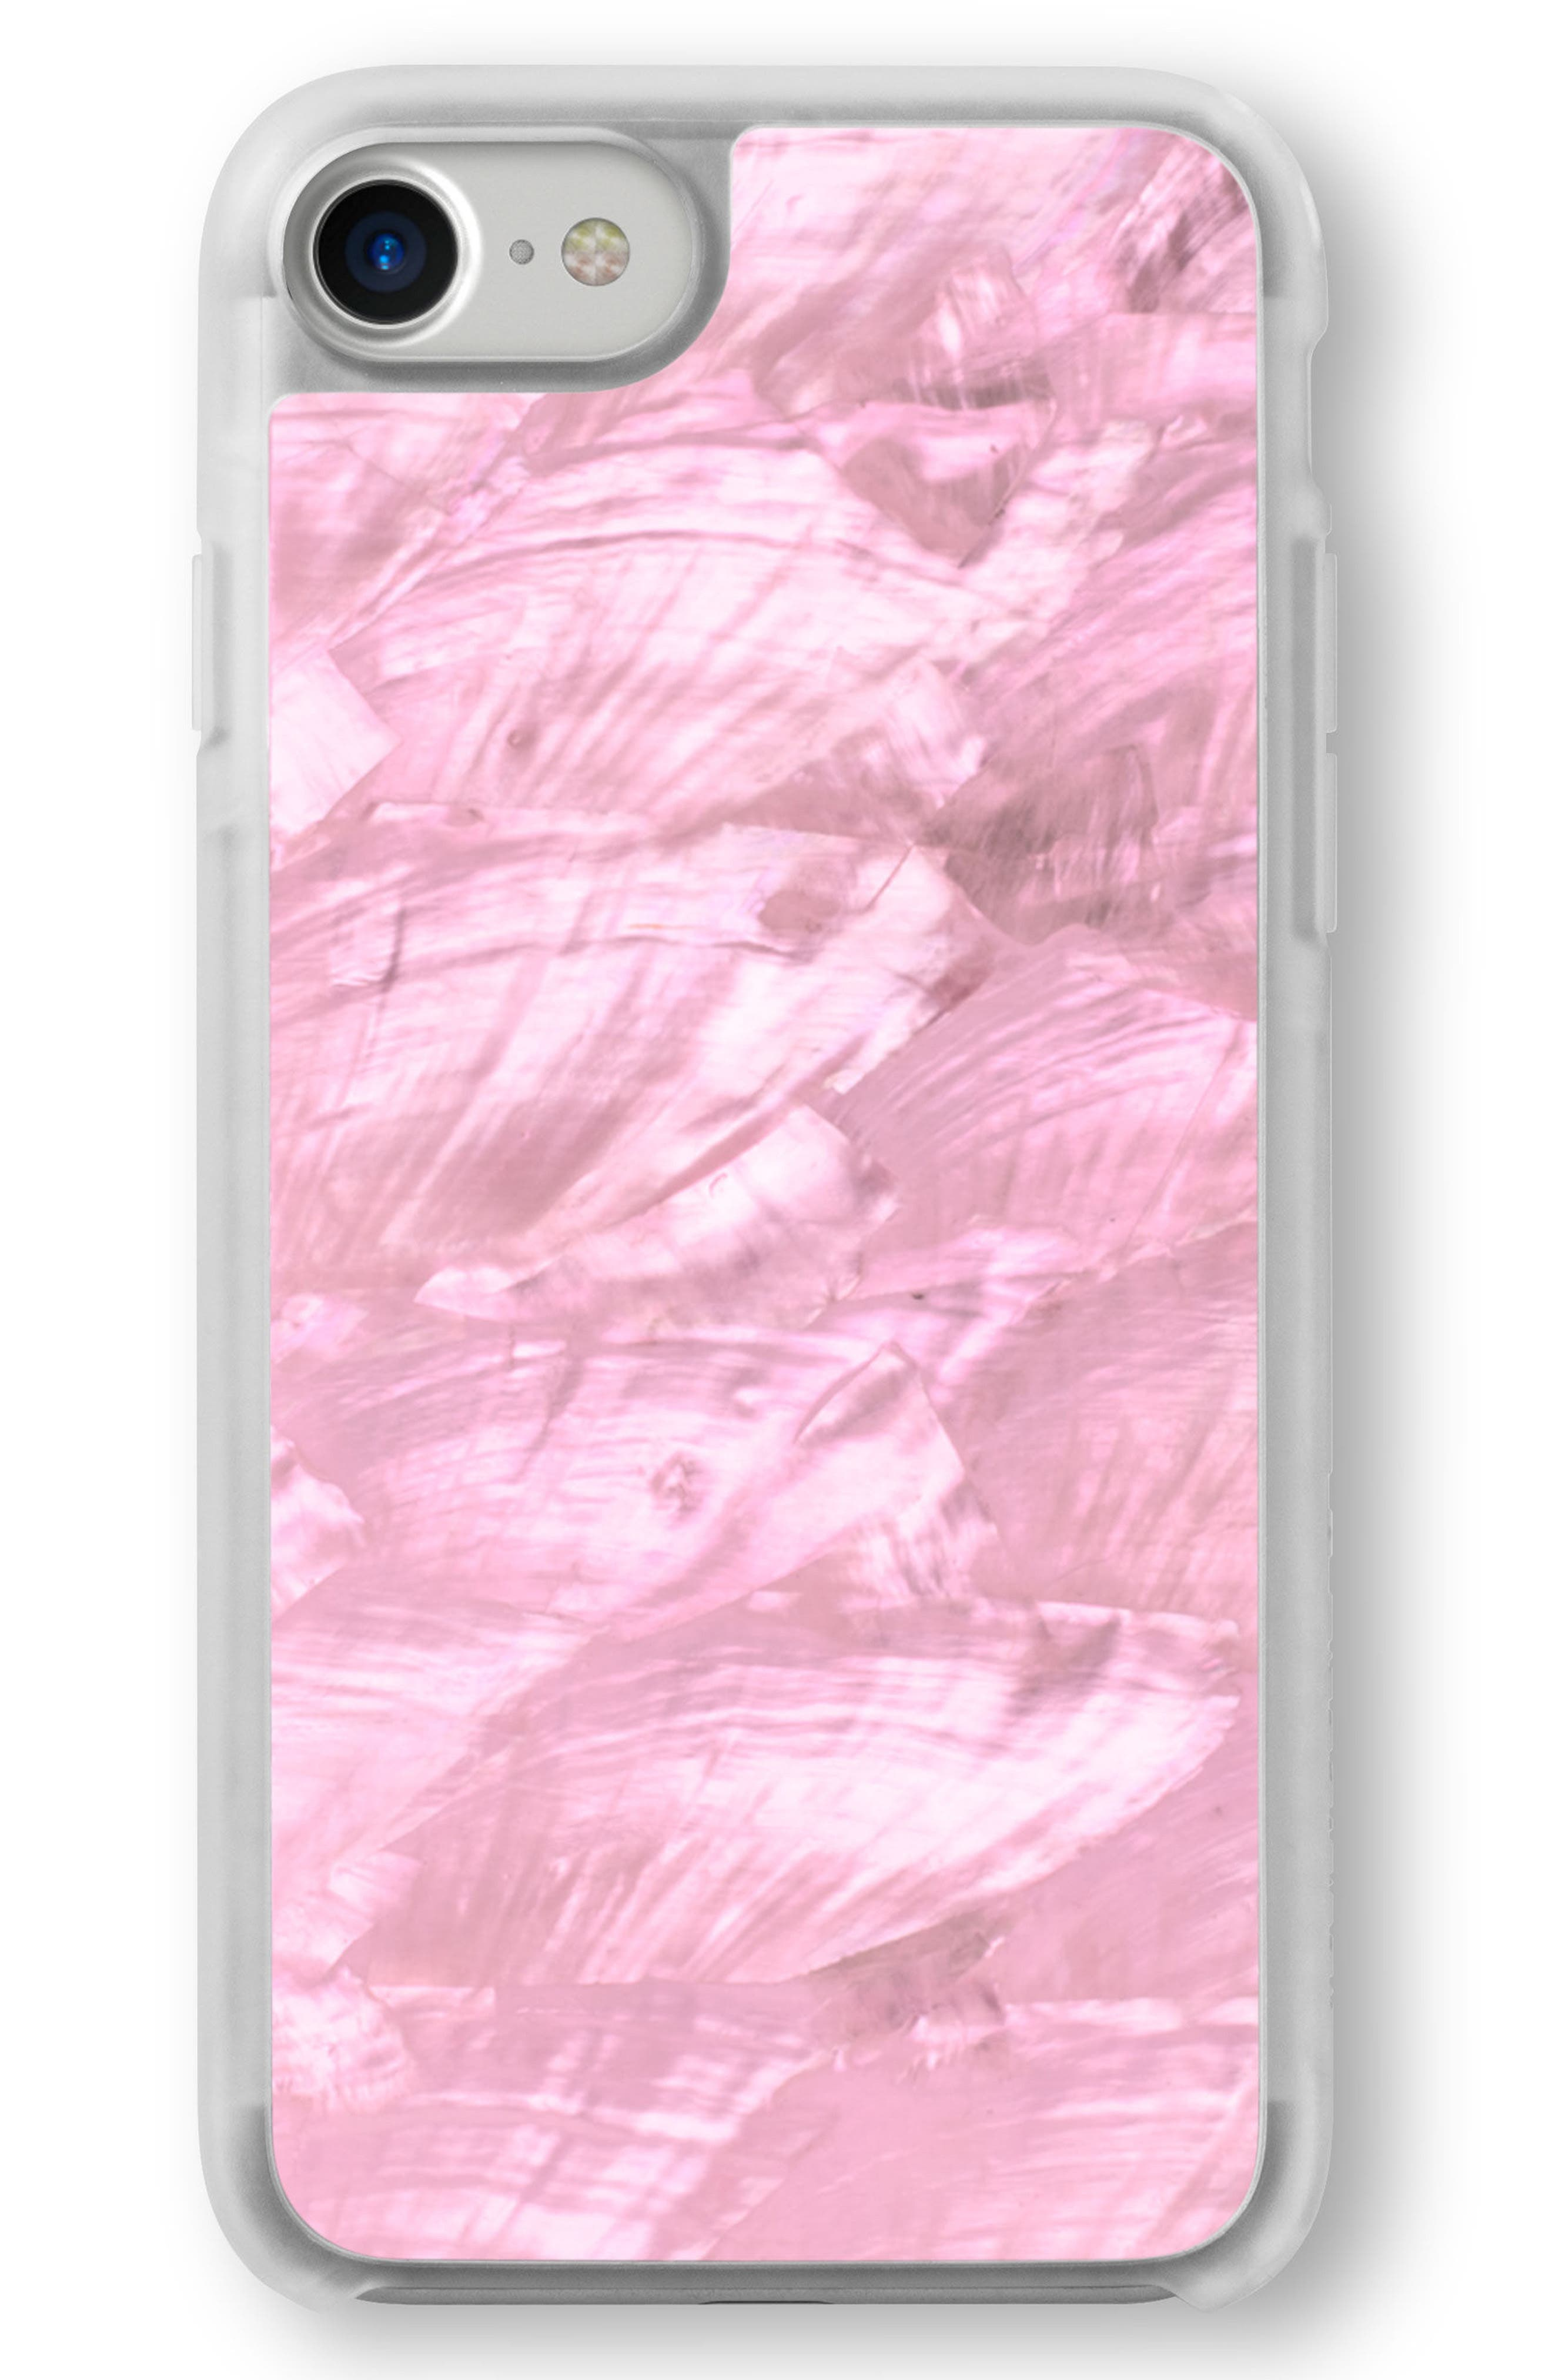 Main Image - Recover Rose Abalone iPhone 6/7 & 6/7 Plus Case